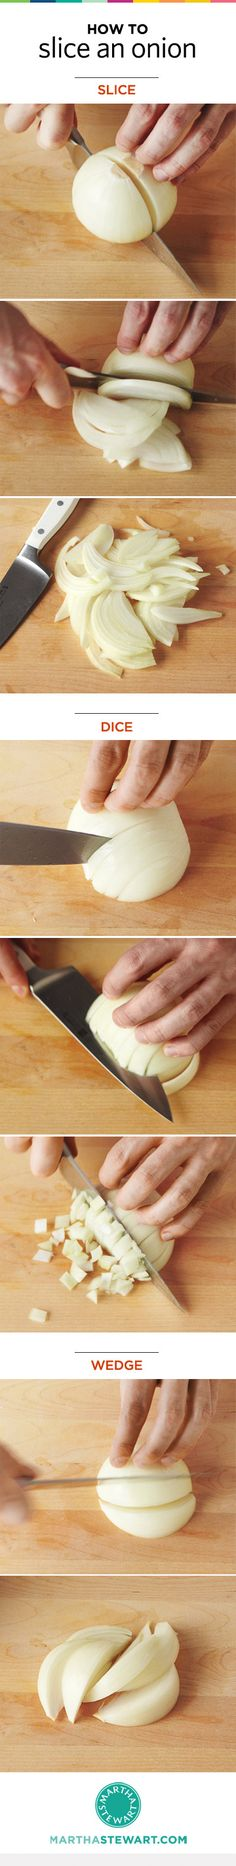 The 3 basics ways to cut an onion -- so many recipes call for them, save time and effort by doing it right! everydayfood.com